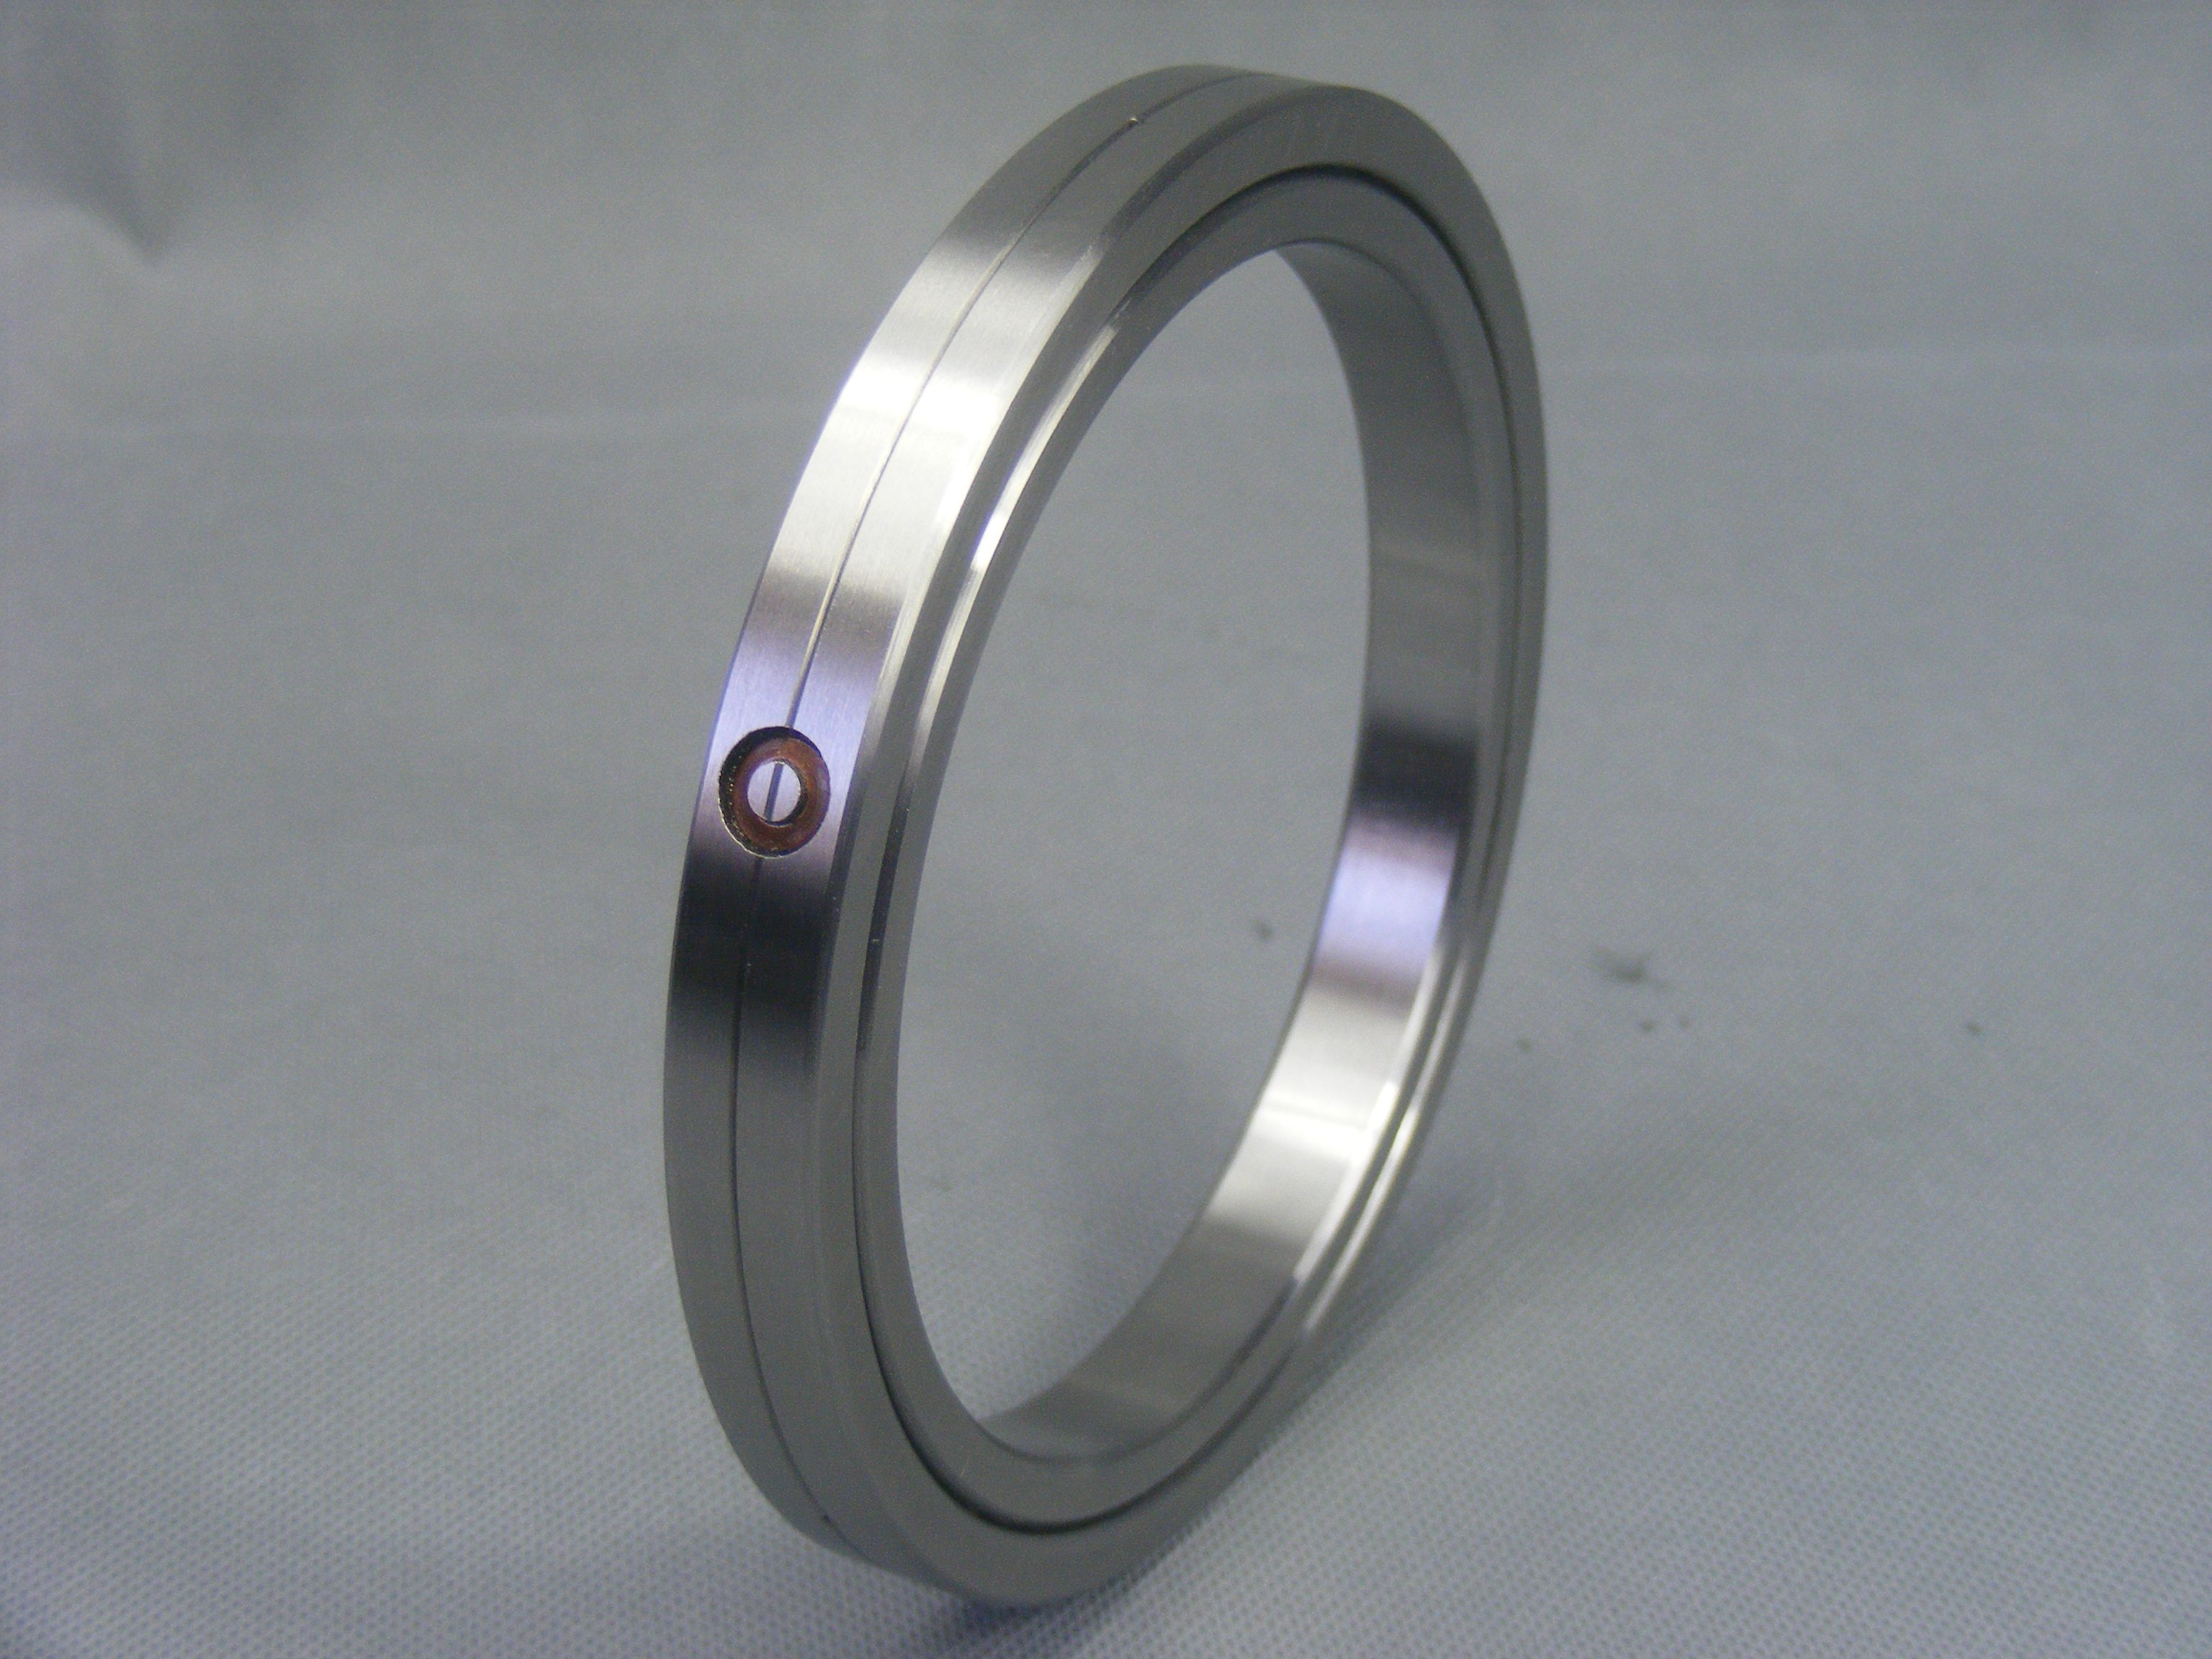 SX011820 Cross Roller Bearing XRC10013